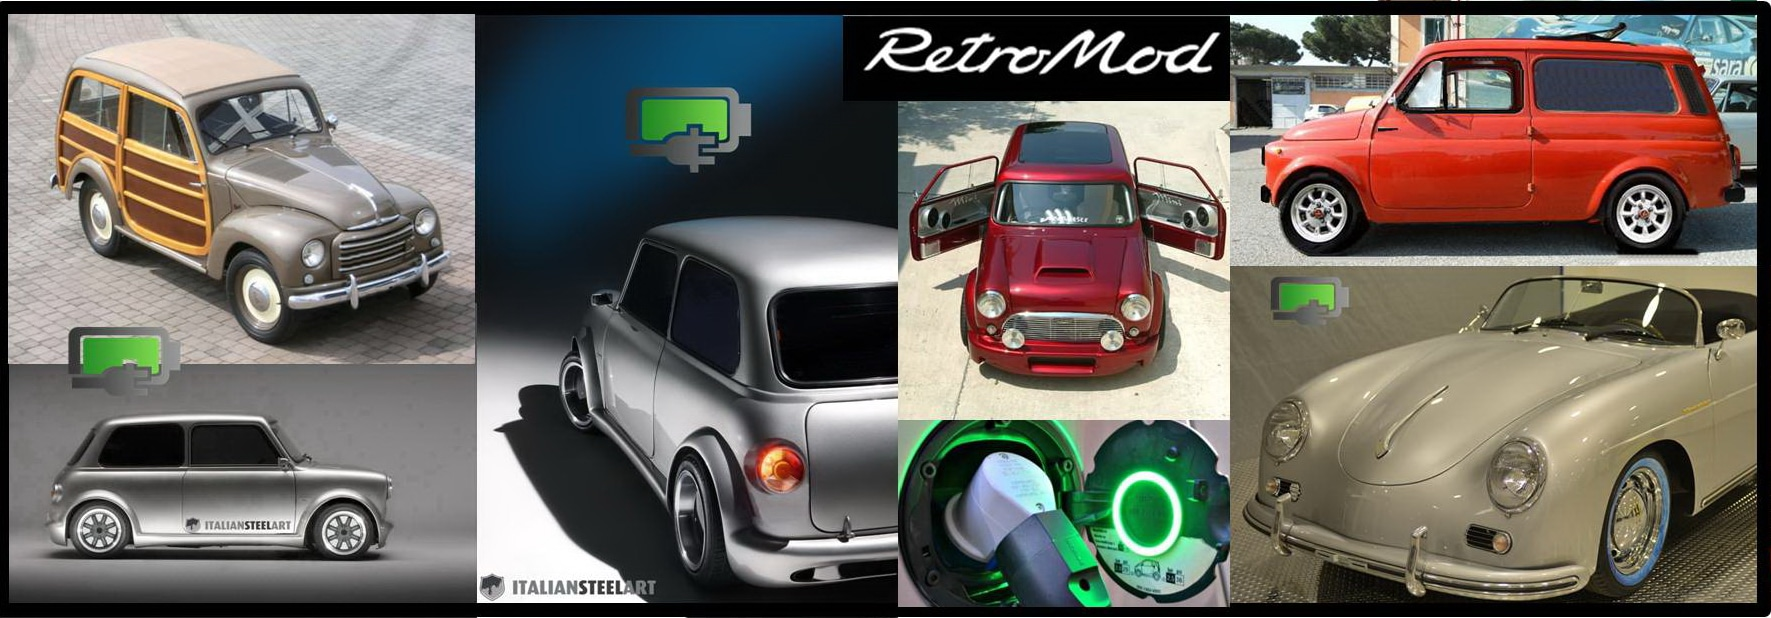 Banner retromod electric